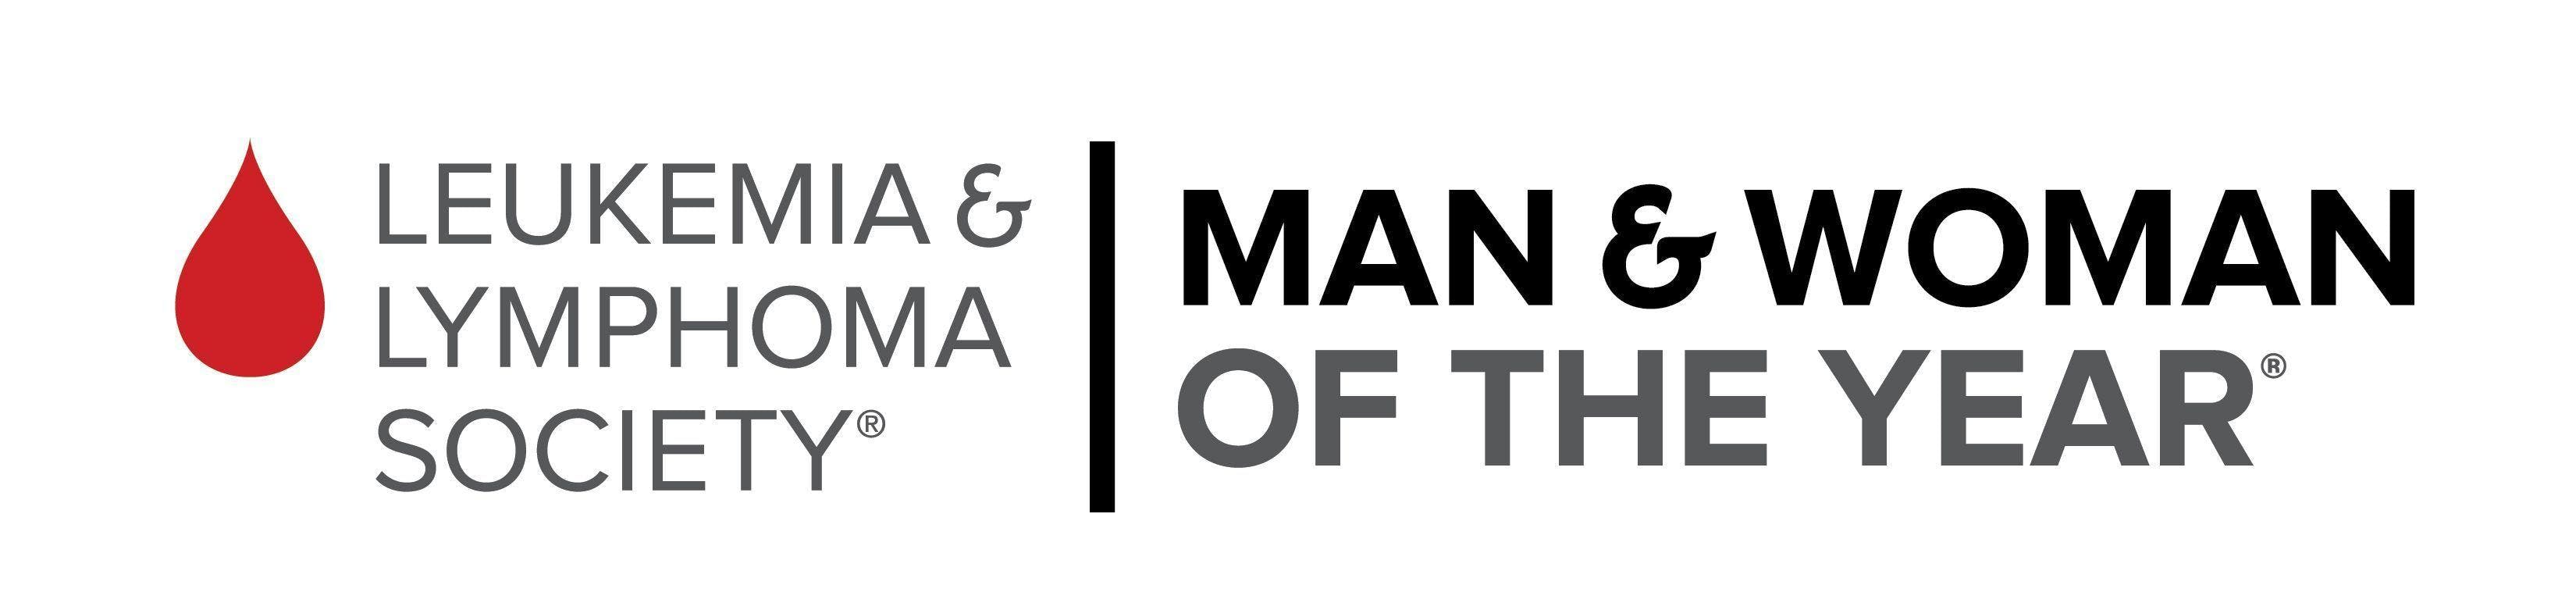 2018 Man & Woman of the Year Grand Finale Gal